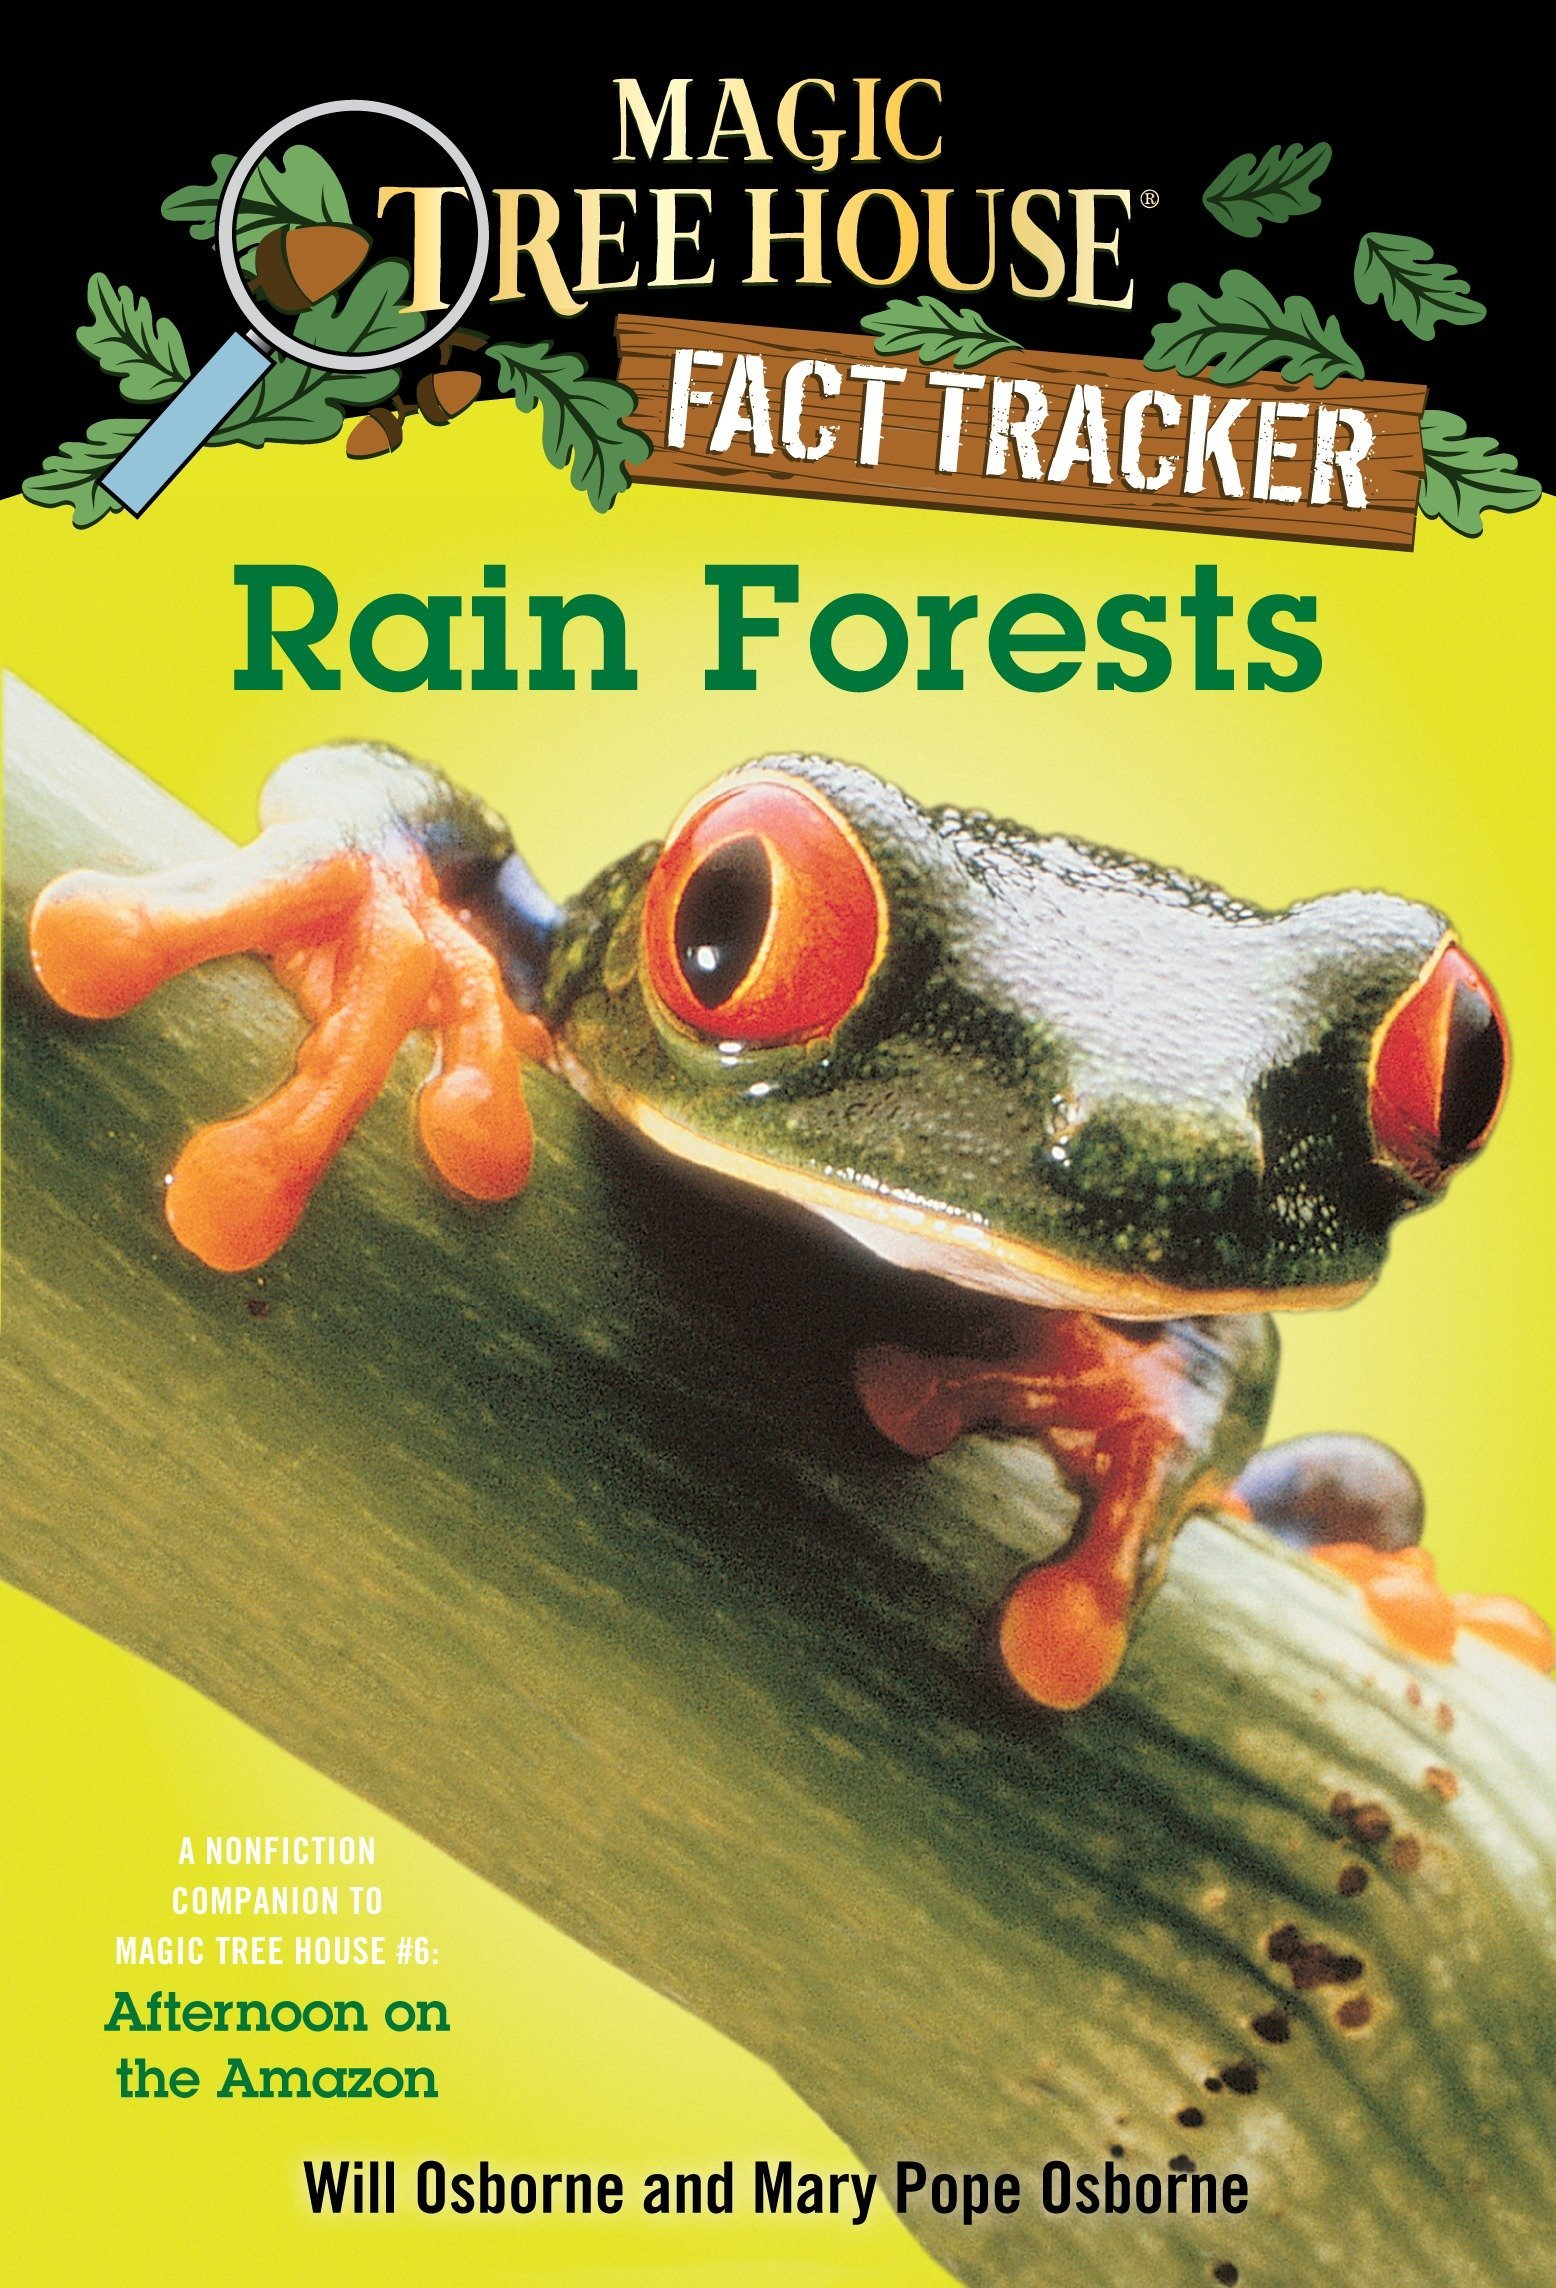 Rain Forests (Magic Tree House Research Guide): Mary Pope Osborne, Will  Osborne, Sal Murdocca: 9780375813559: Amazon.com: Books